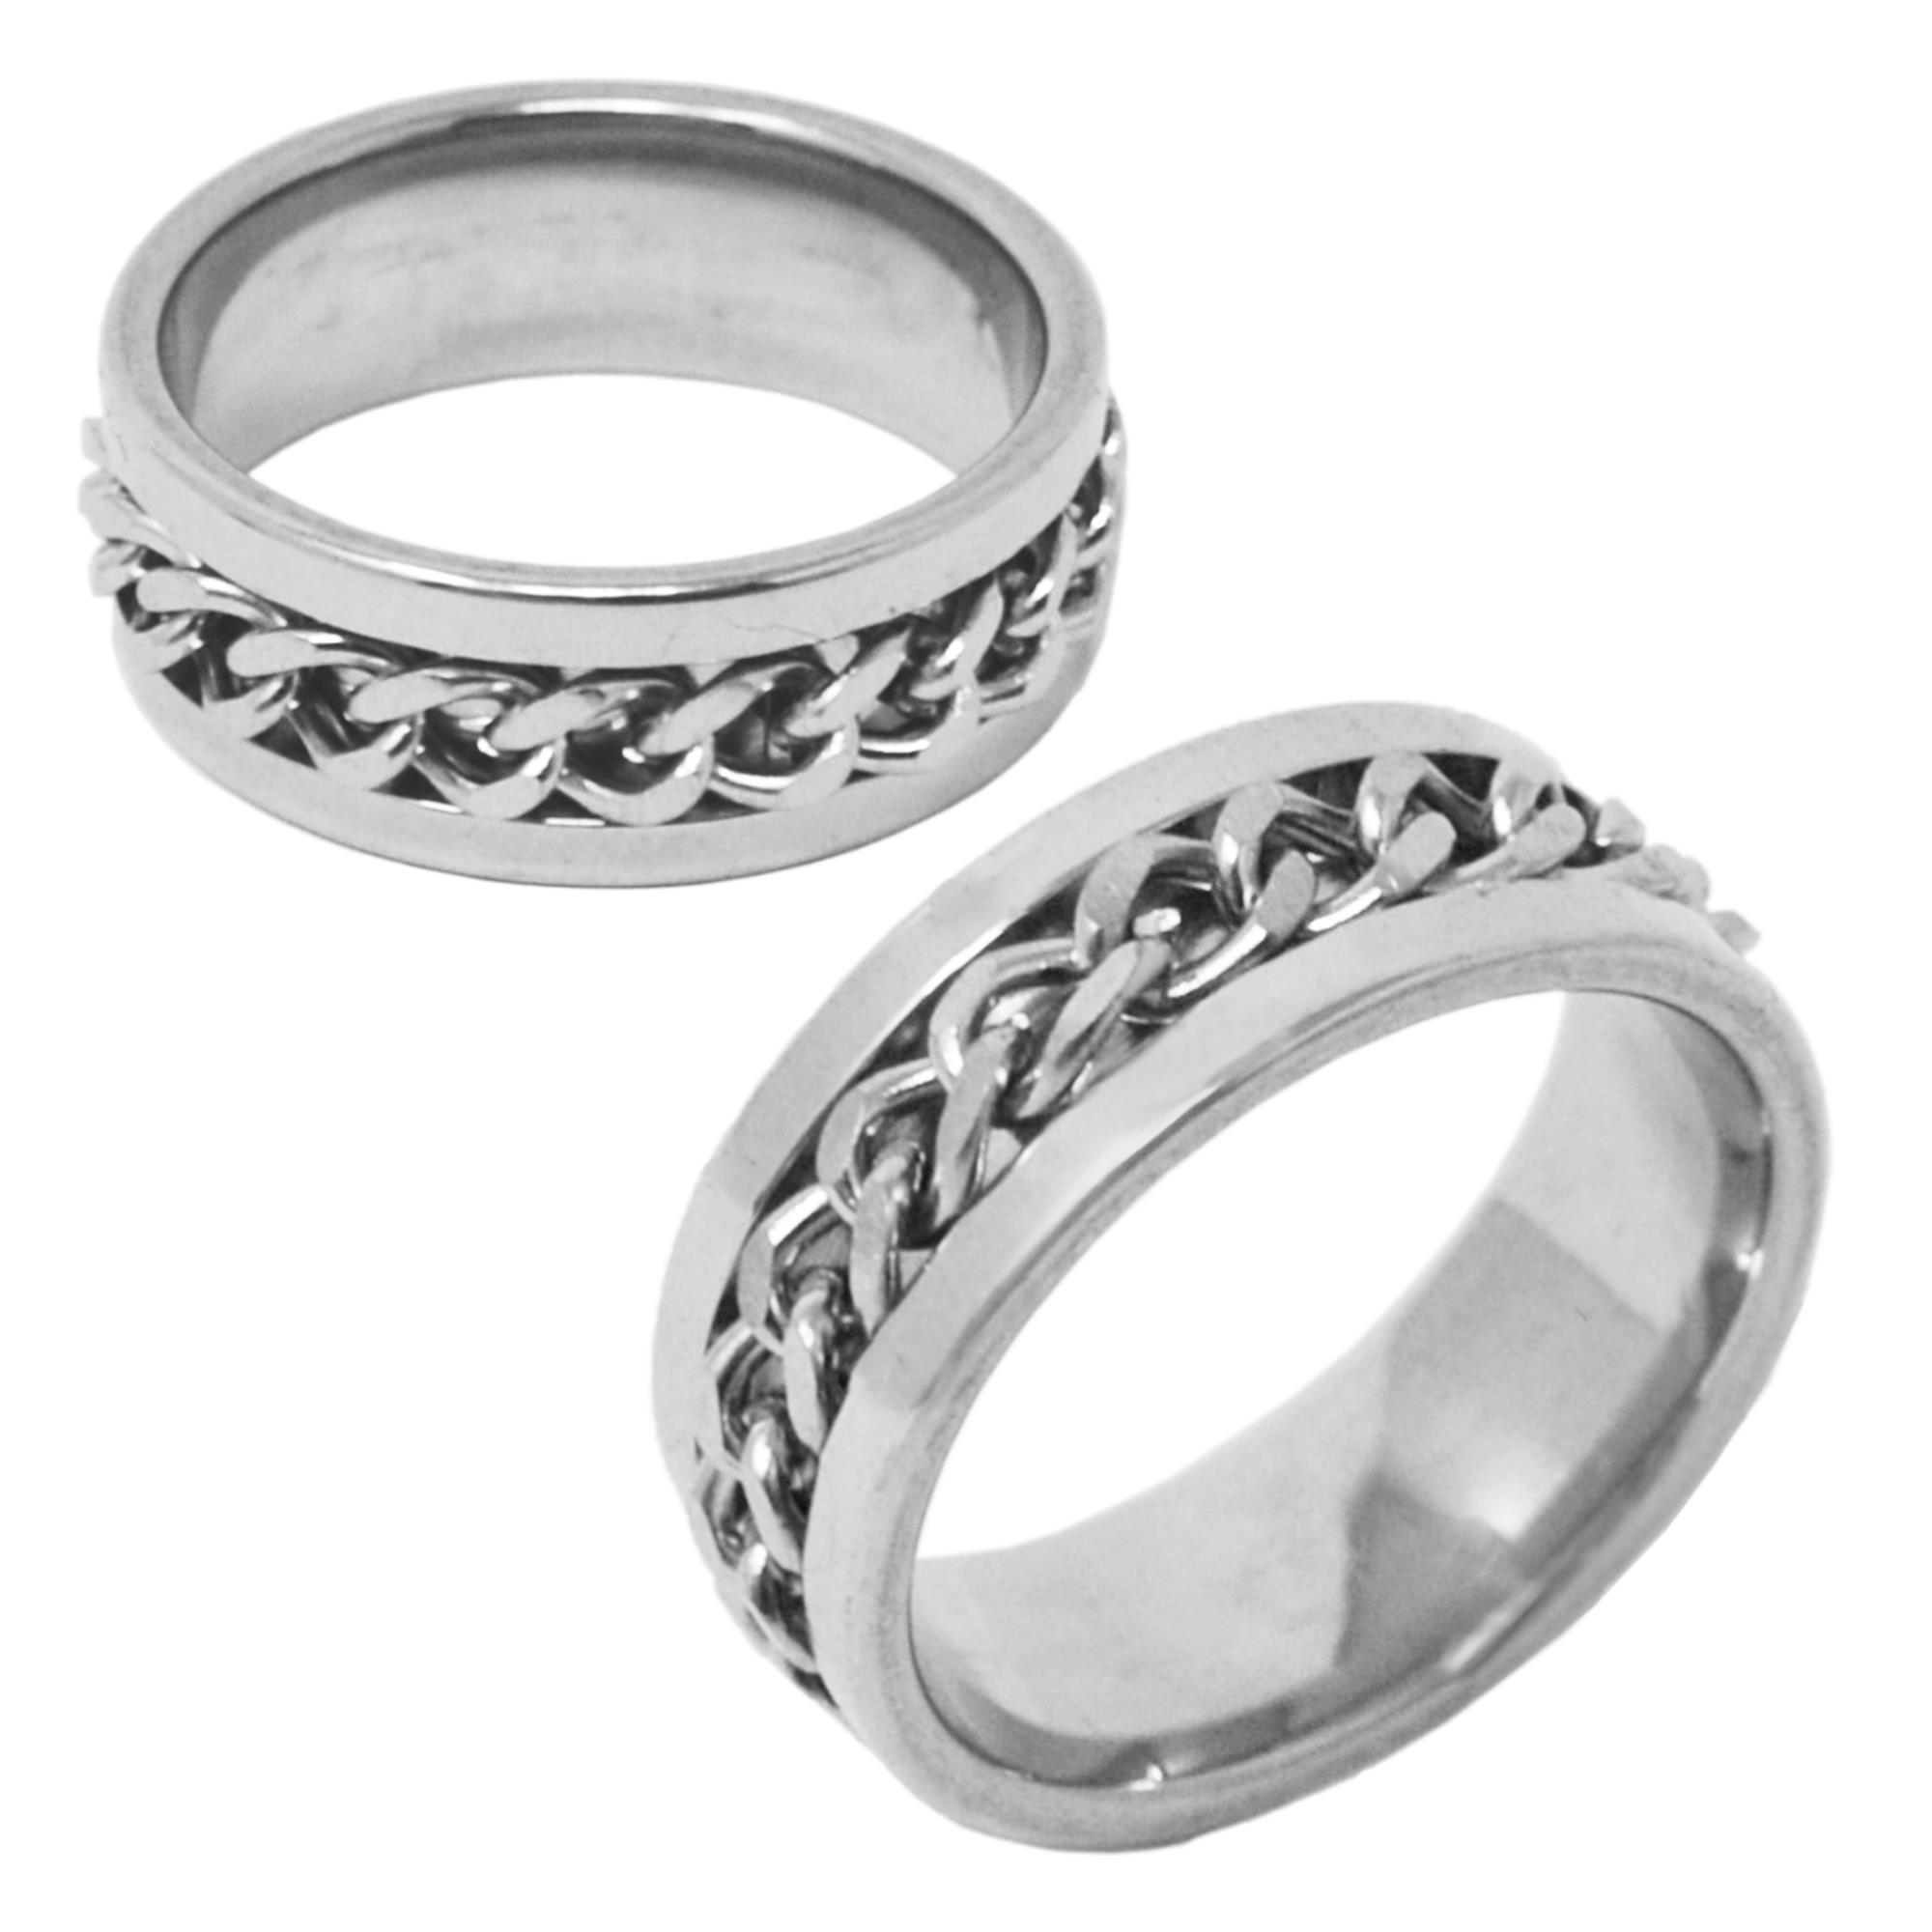 STAINLESS STEEL CHAIN LINK RING